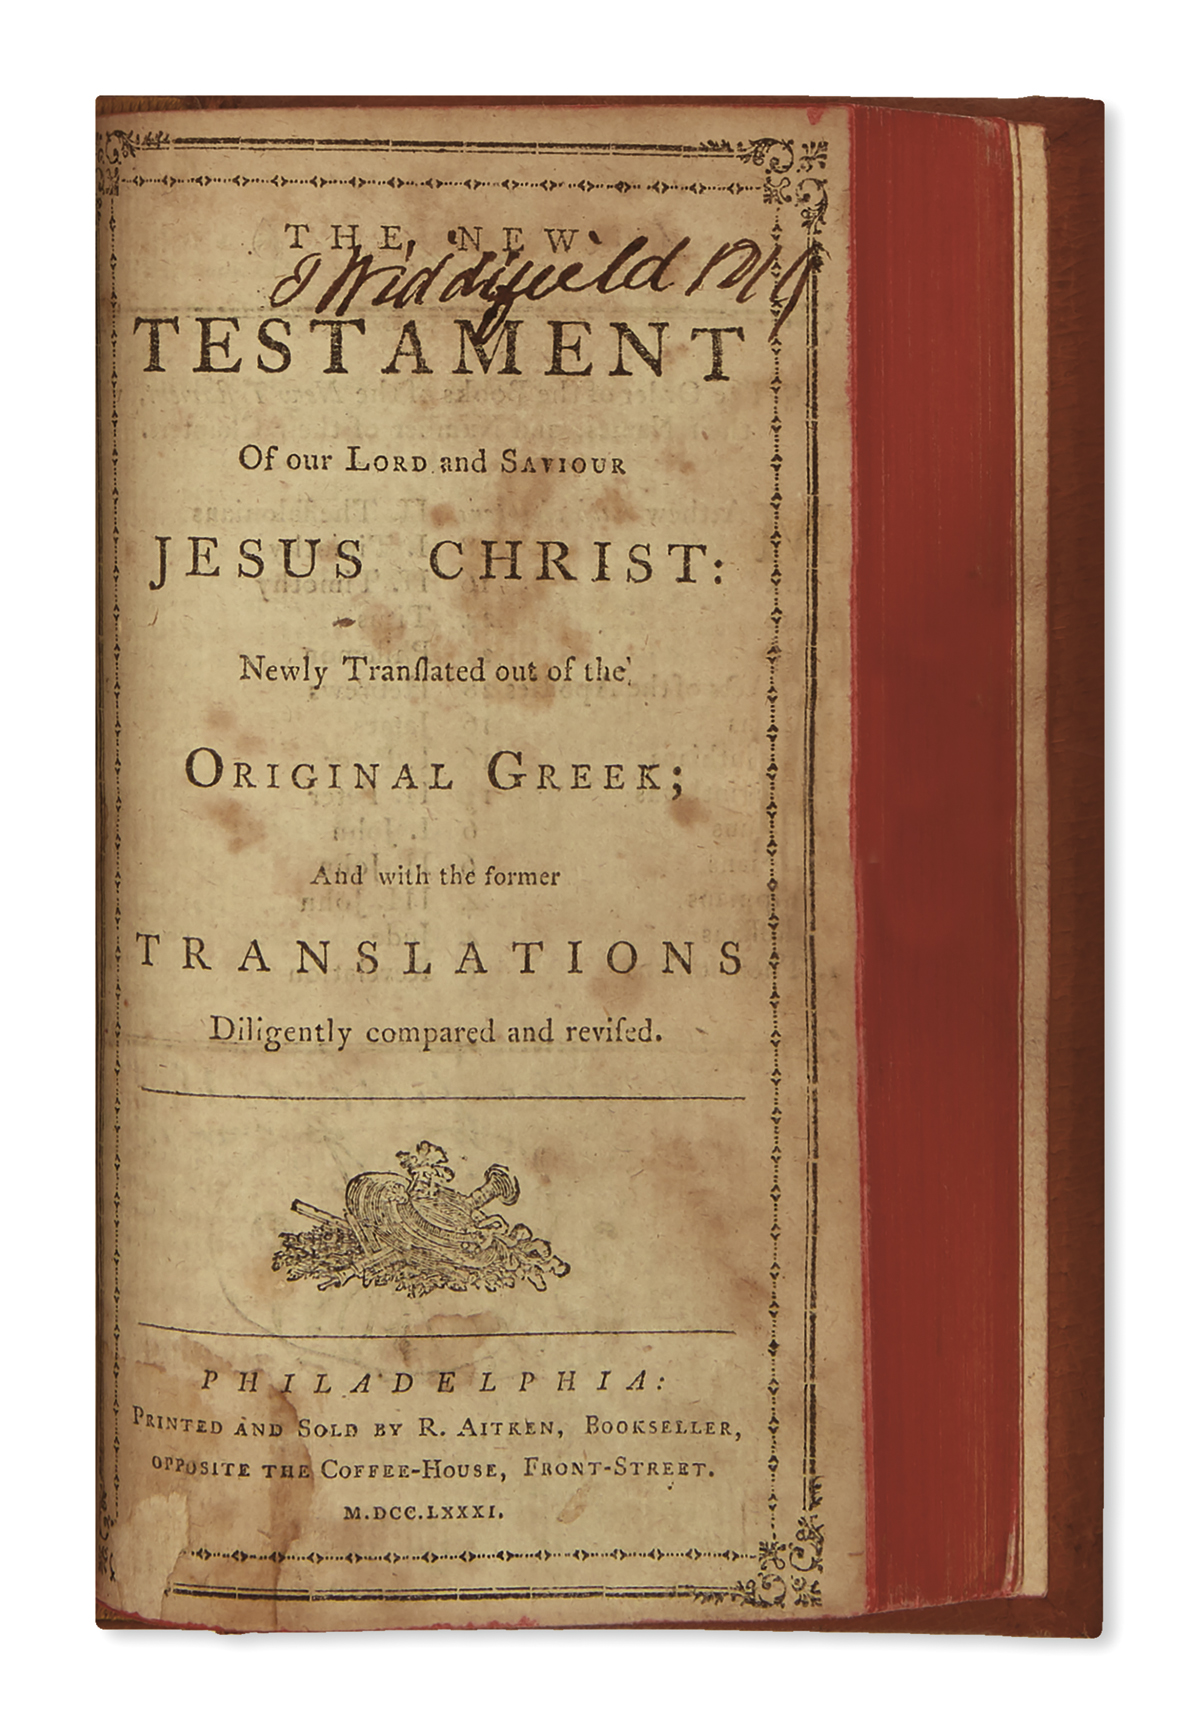 (BIBLE-IN-ENGLISH)-[The-Holy-Bible-Containing-the-Old-and-New-Testaments-Newly-Translated-out-of-the-Original-Tongues]